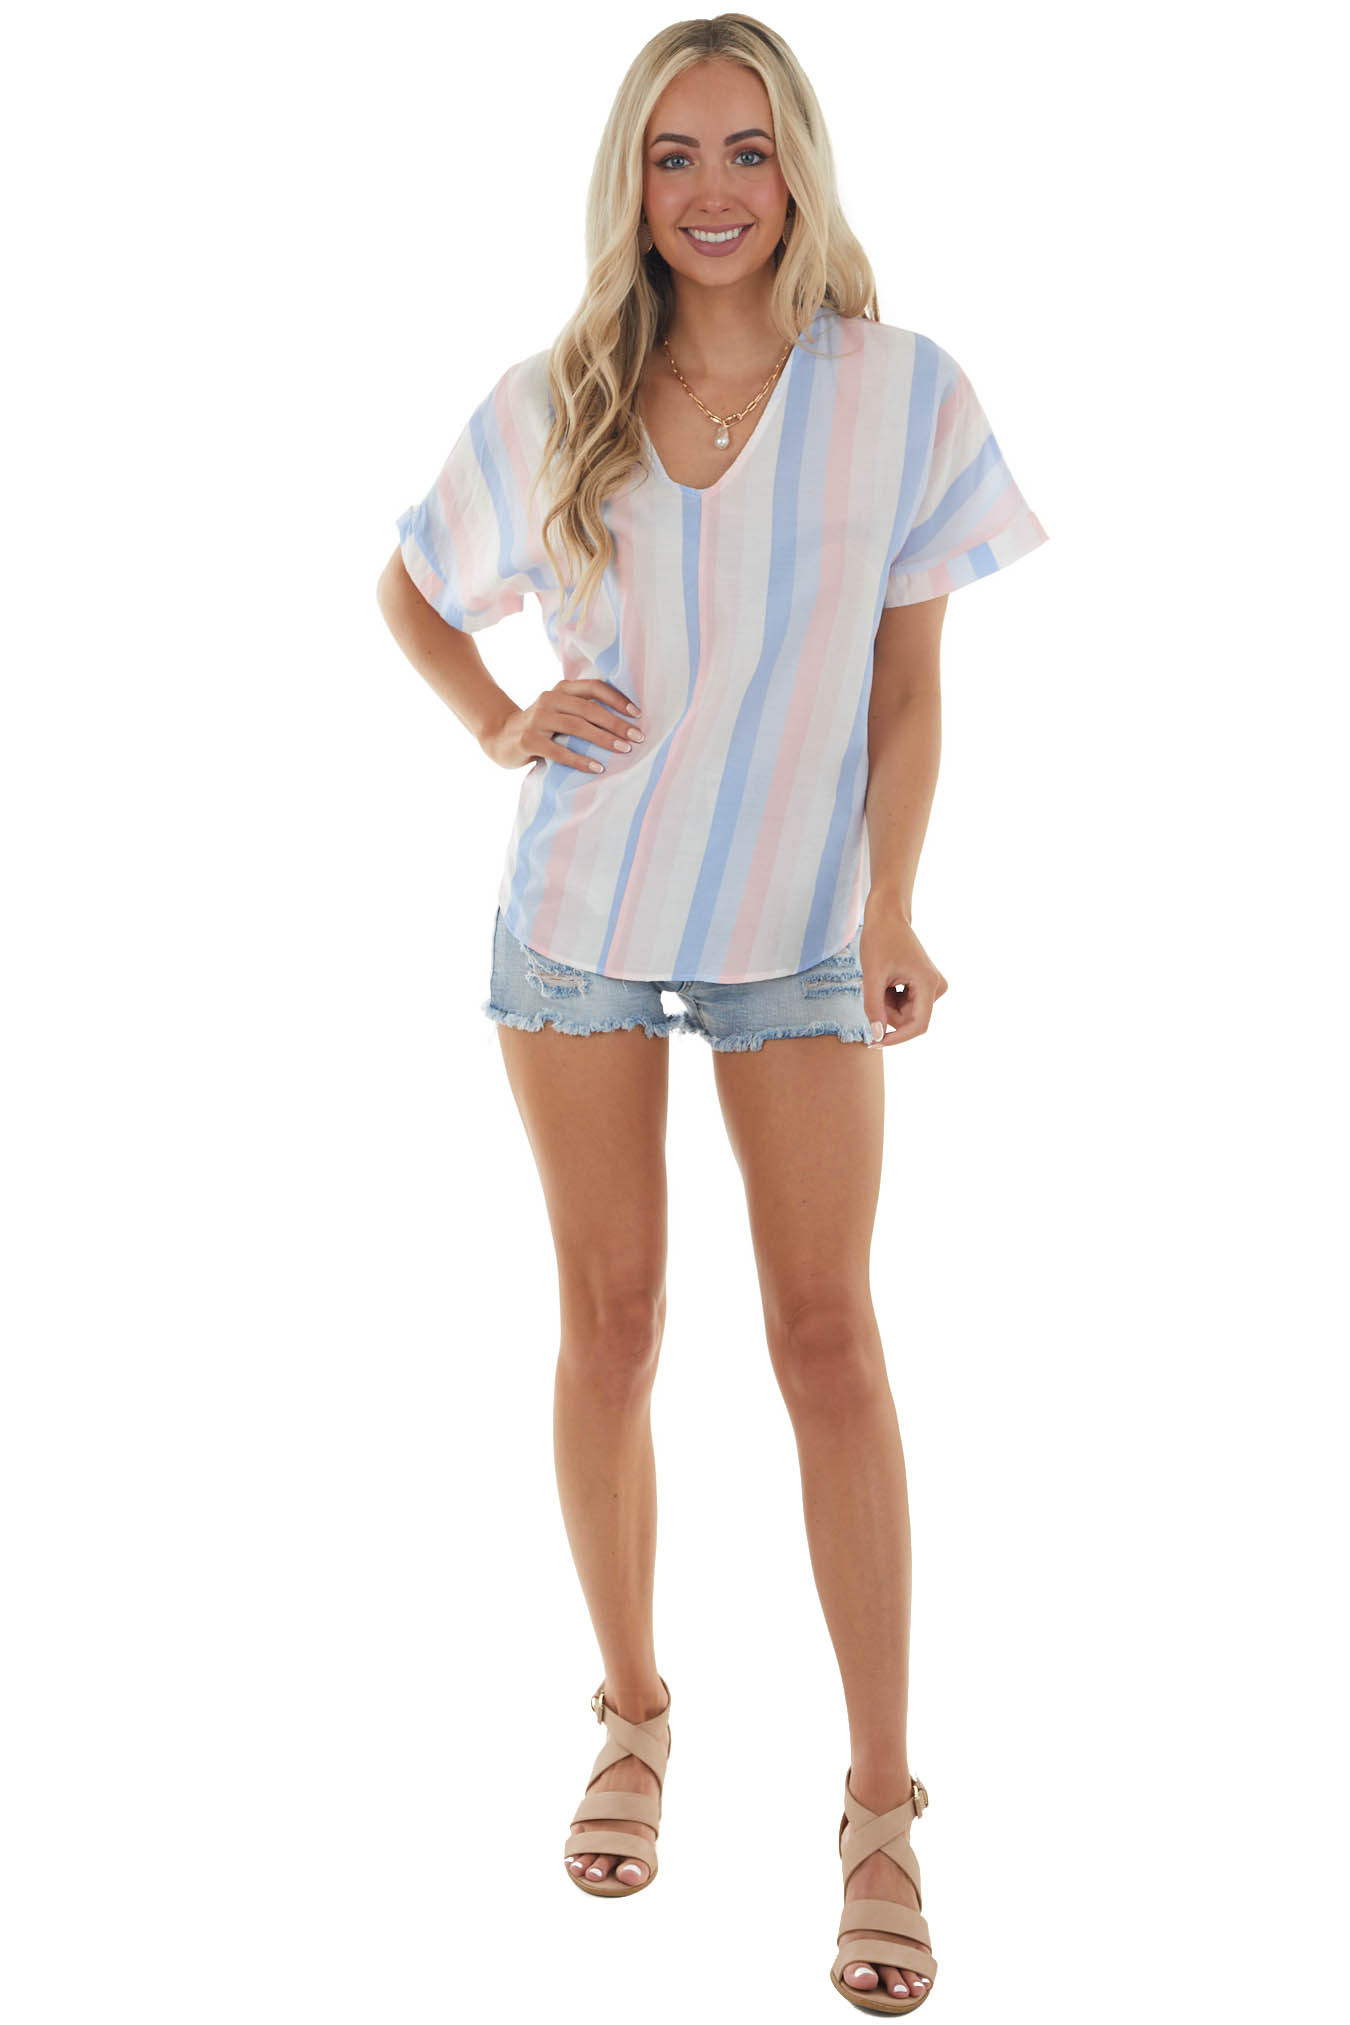 Carnation and Cornflower Striped Woven Top